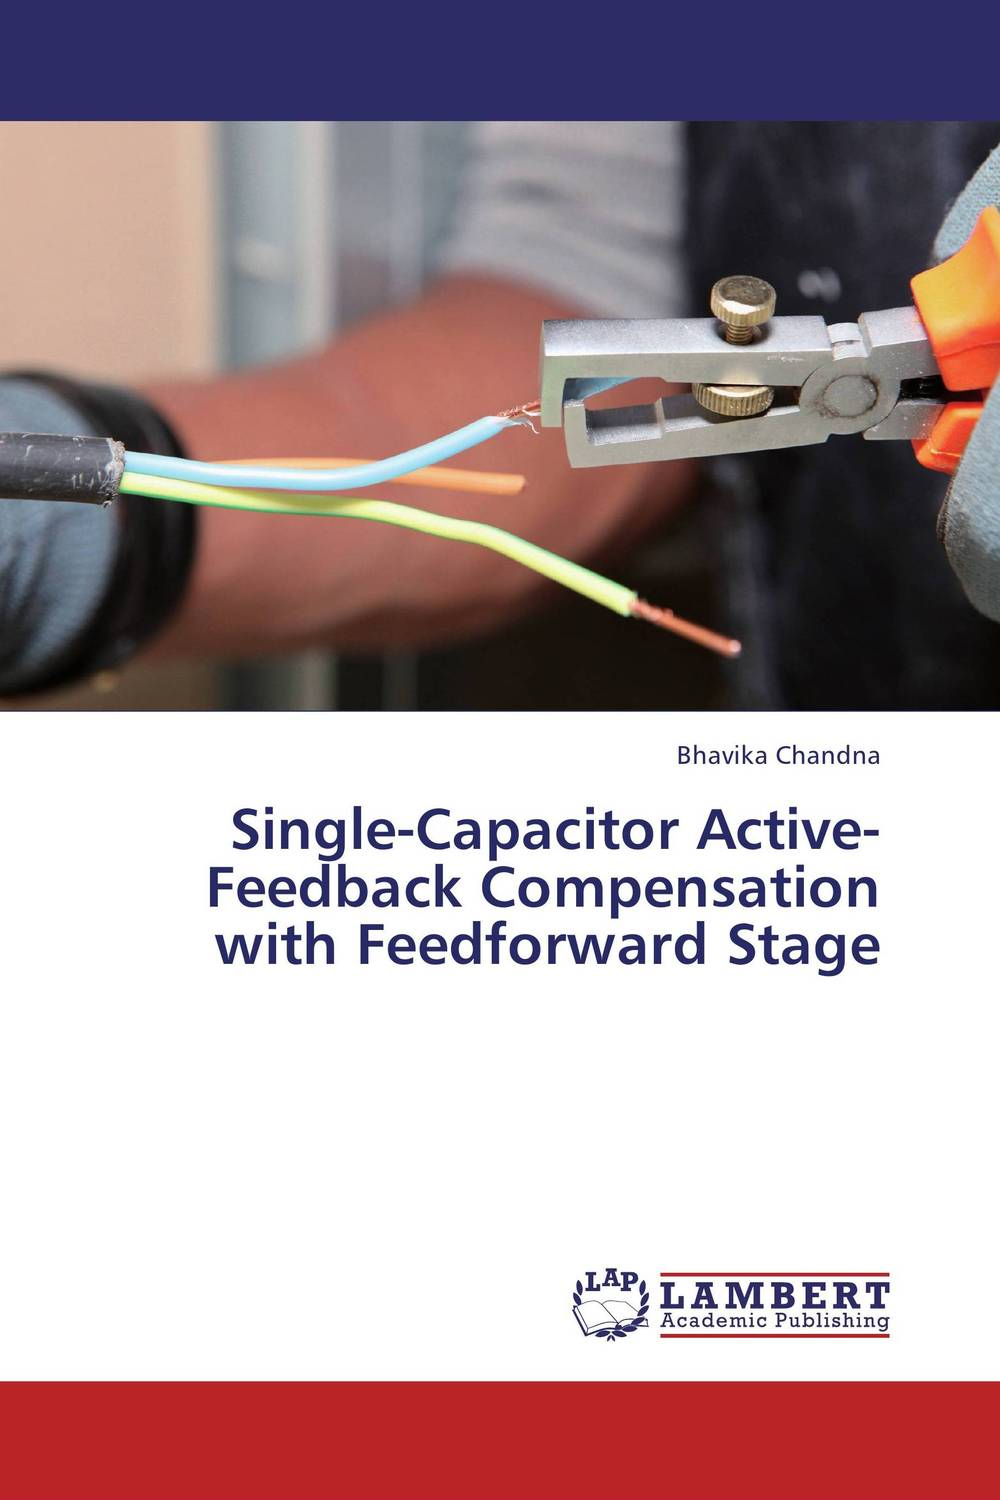 Single-Capacitor Active-Feedback Compensation with Feedforward Stage 3uf 750vac 2000vdc high frequency high voltage large current resonant capacitor 55 45mm in stock